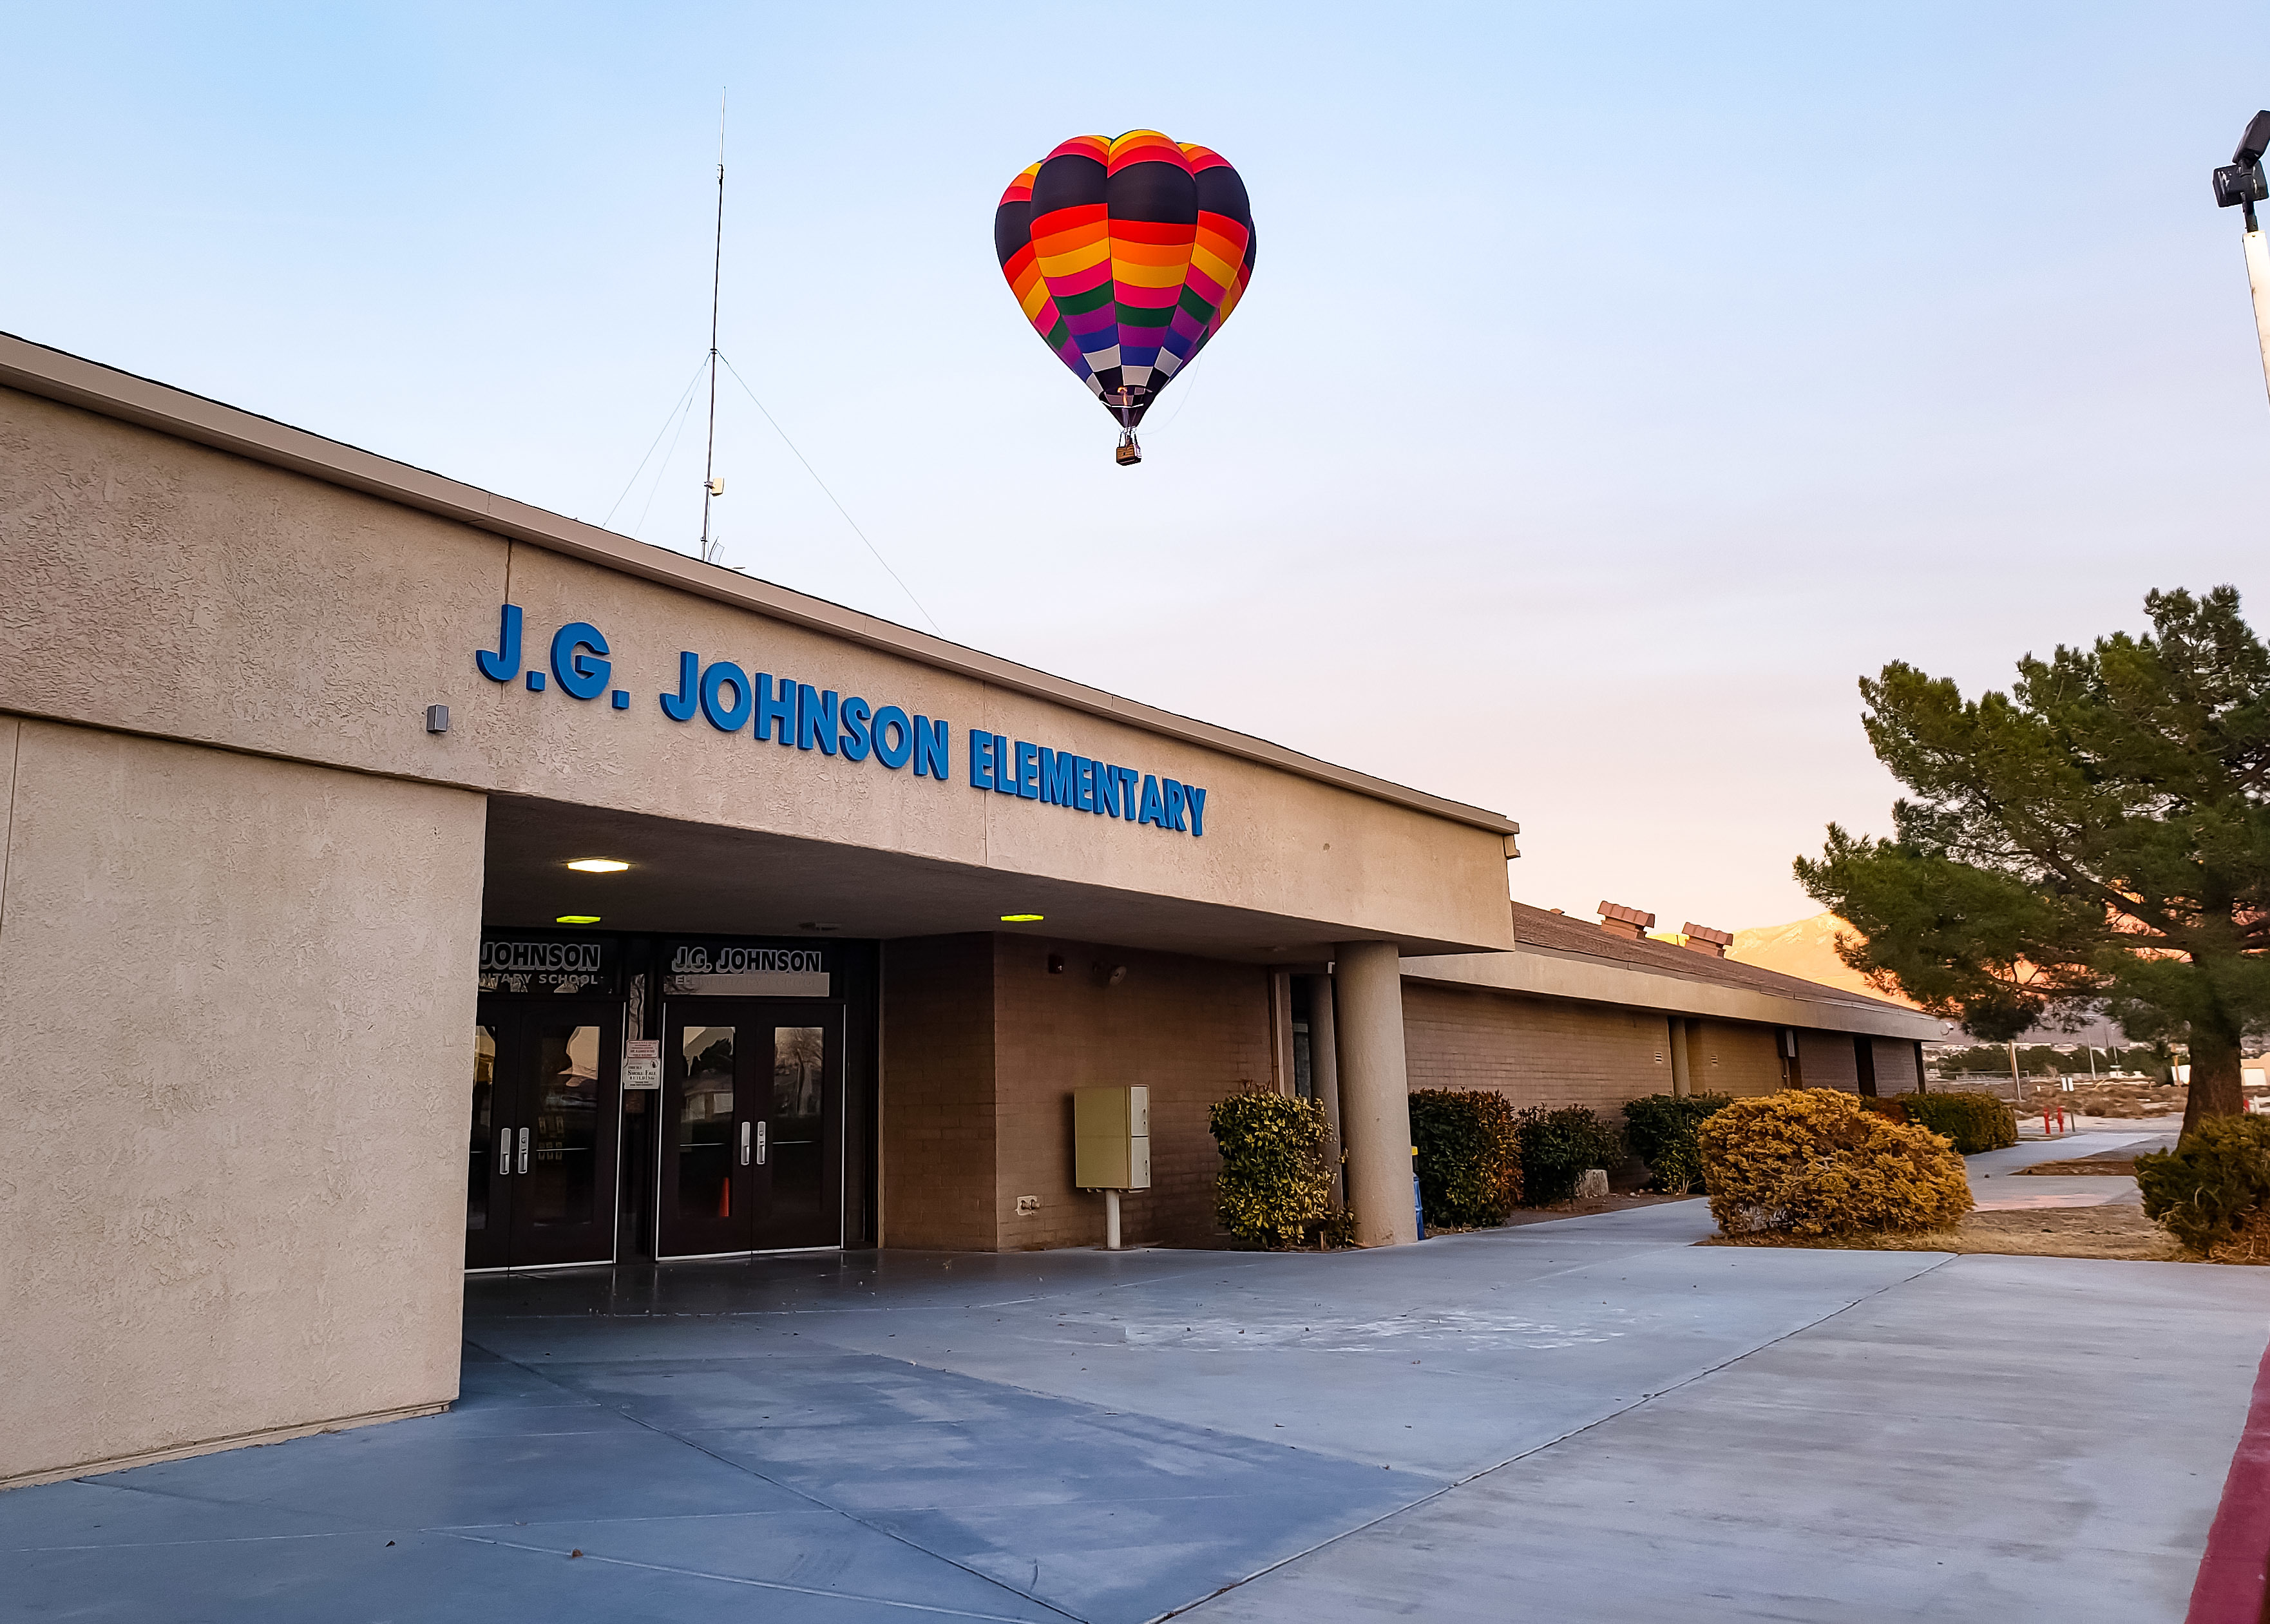 The front of J.G. Johnson